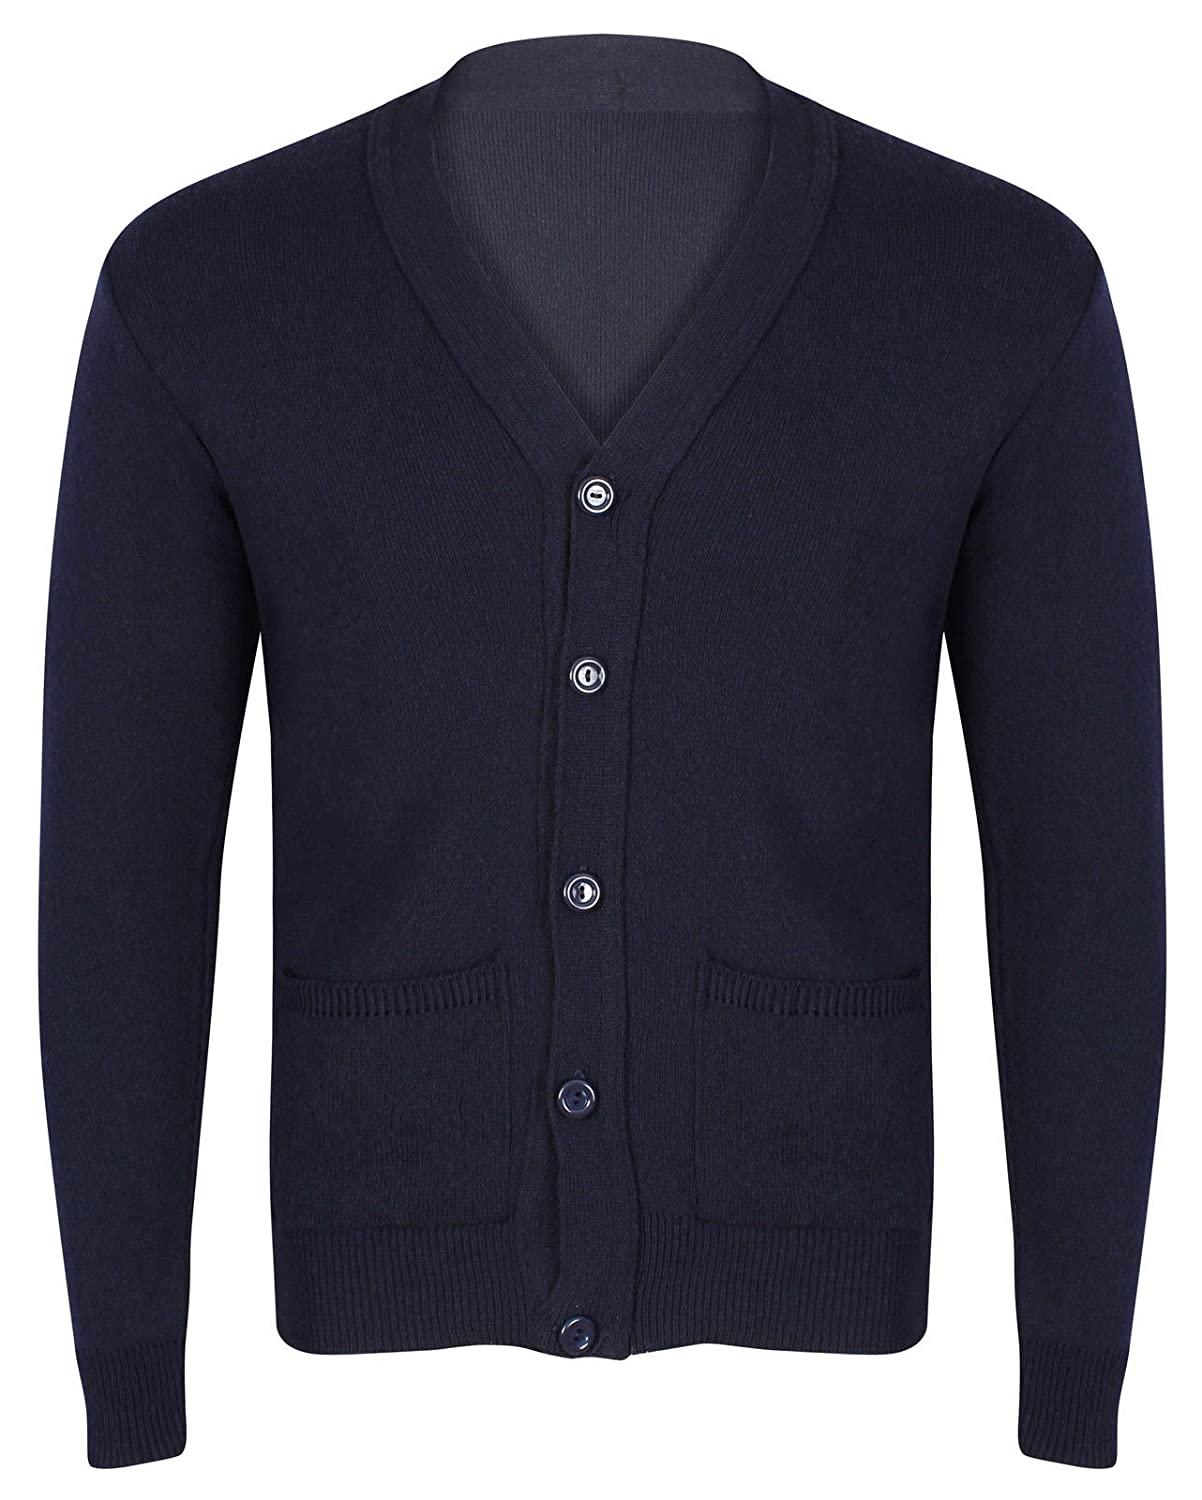 Full Sleeve Plain Mens Button Fastened Cardi. Casual and Smart Buttoned Cardigan Black Navy Grey Beige